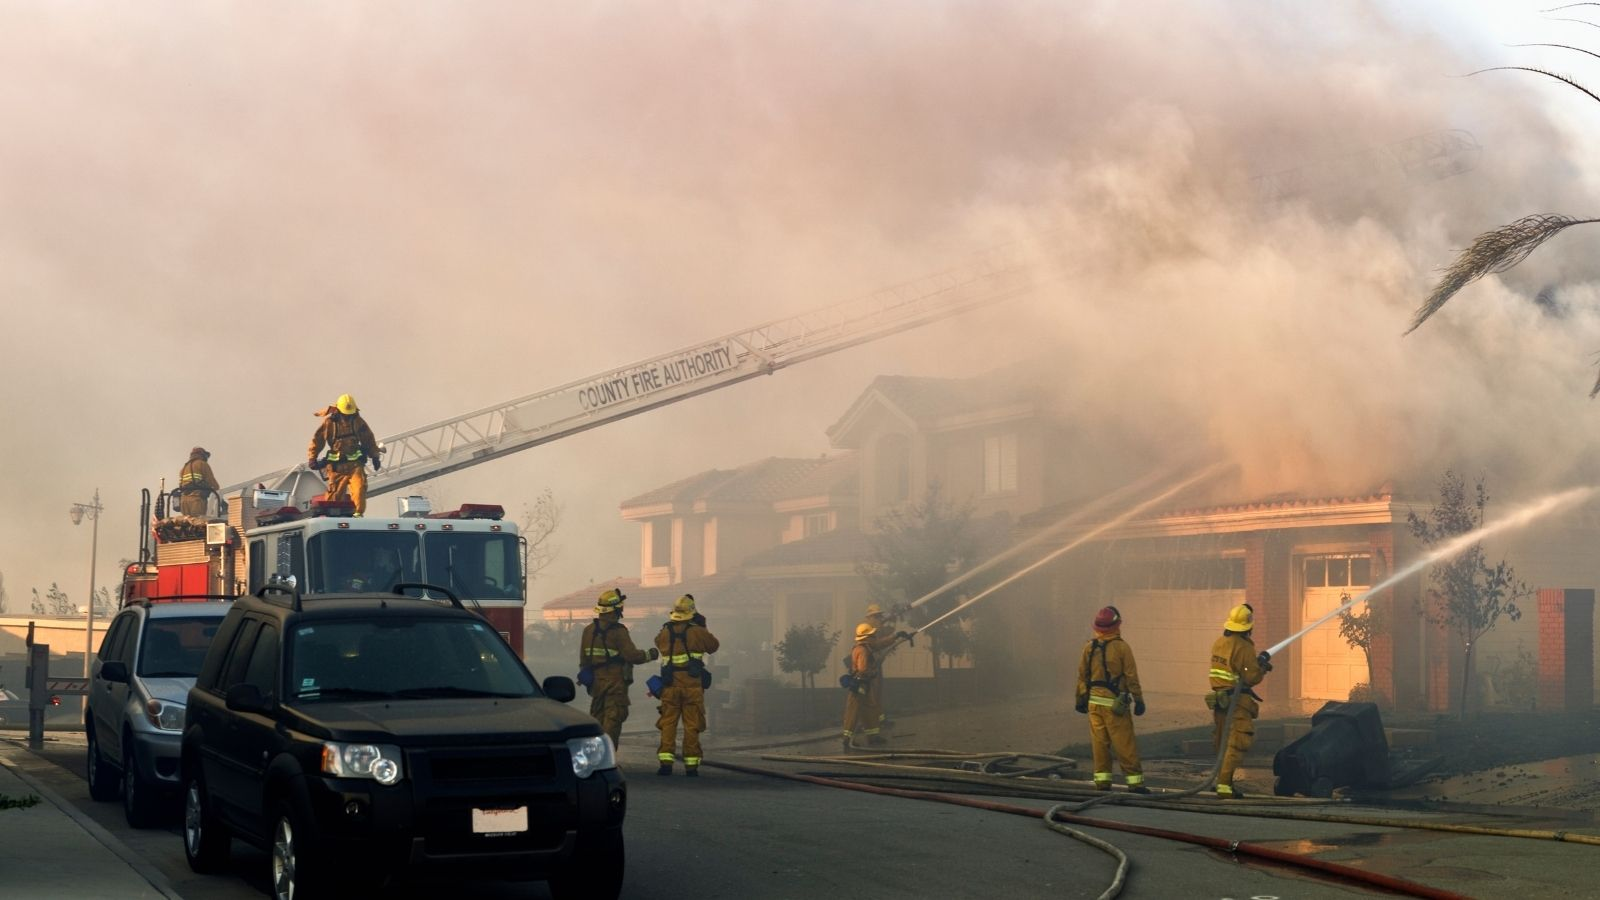 Fire fighters putting out house fire in a suburban neighborhood